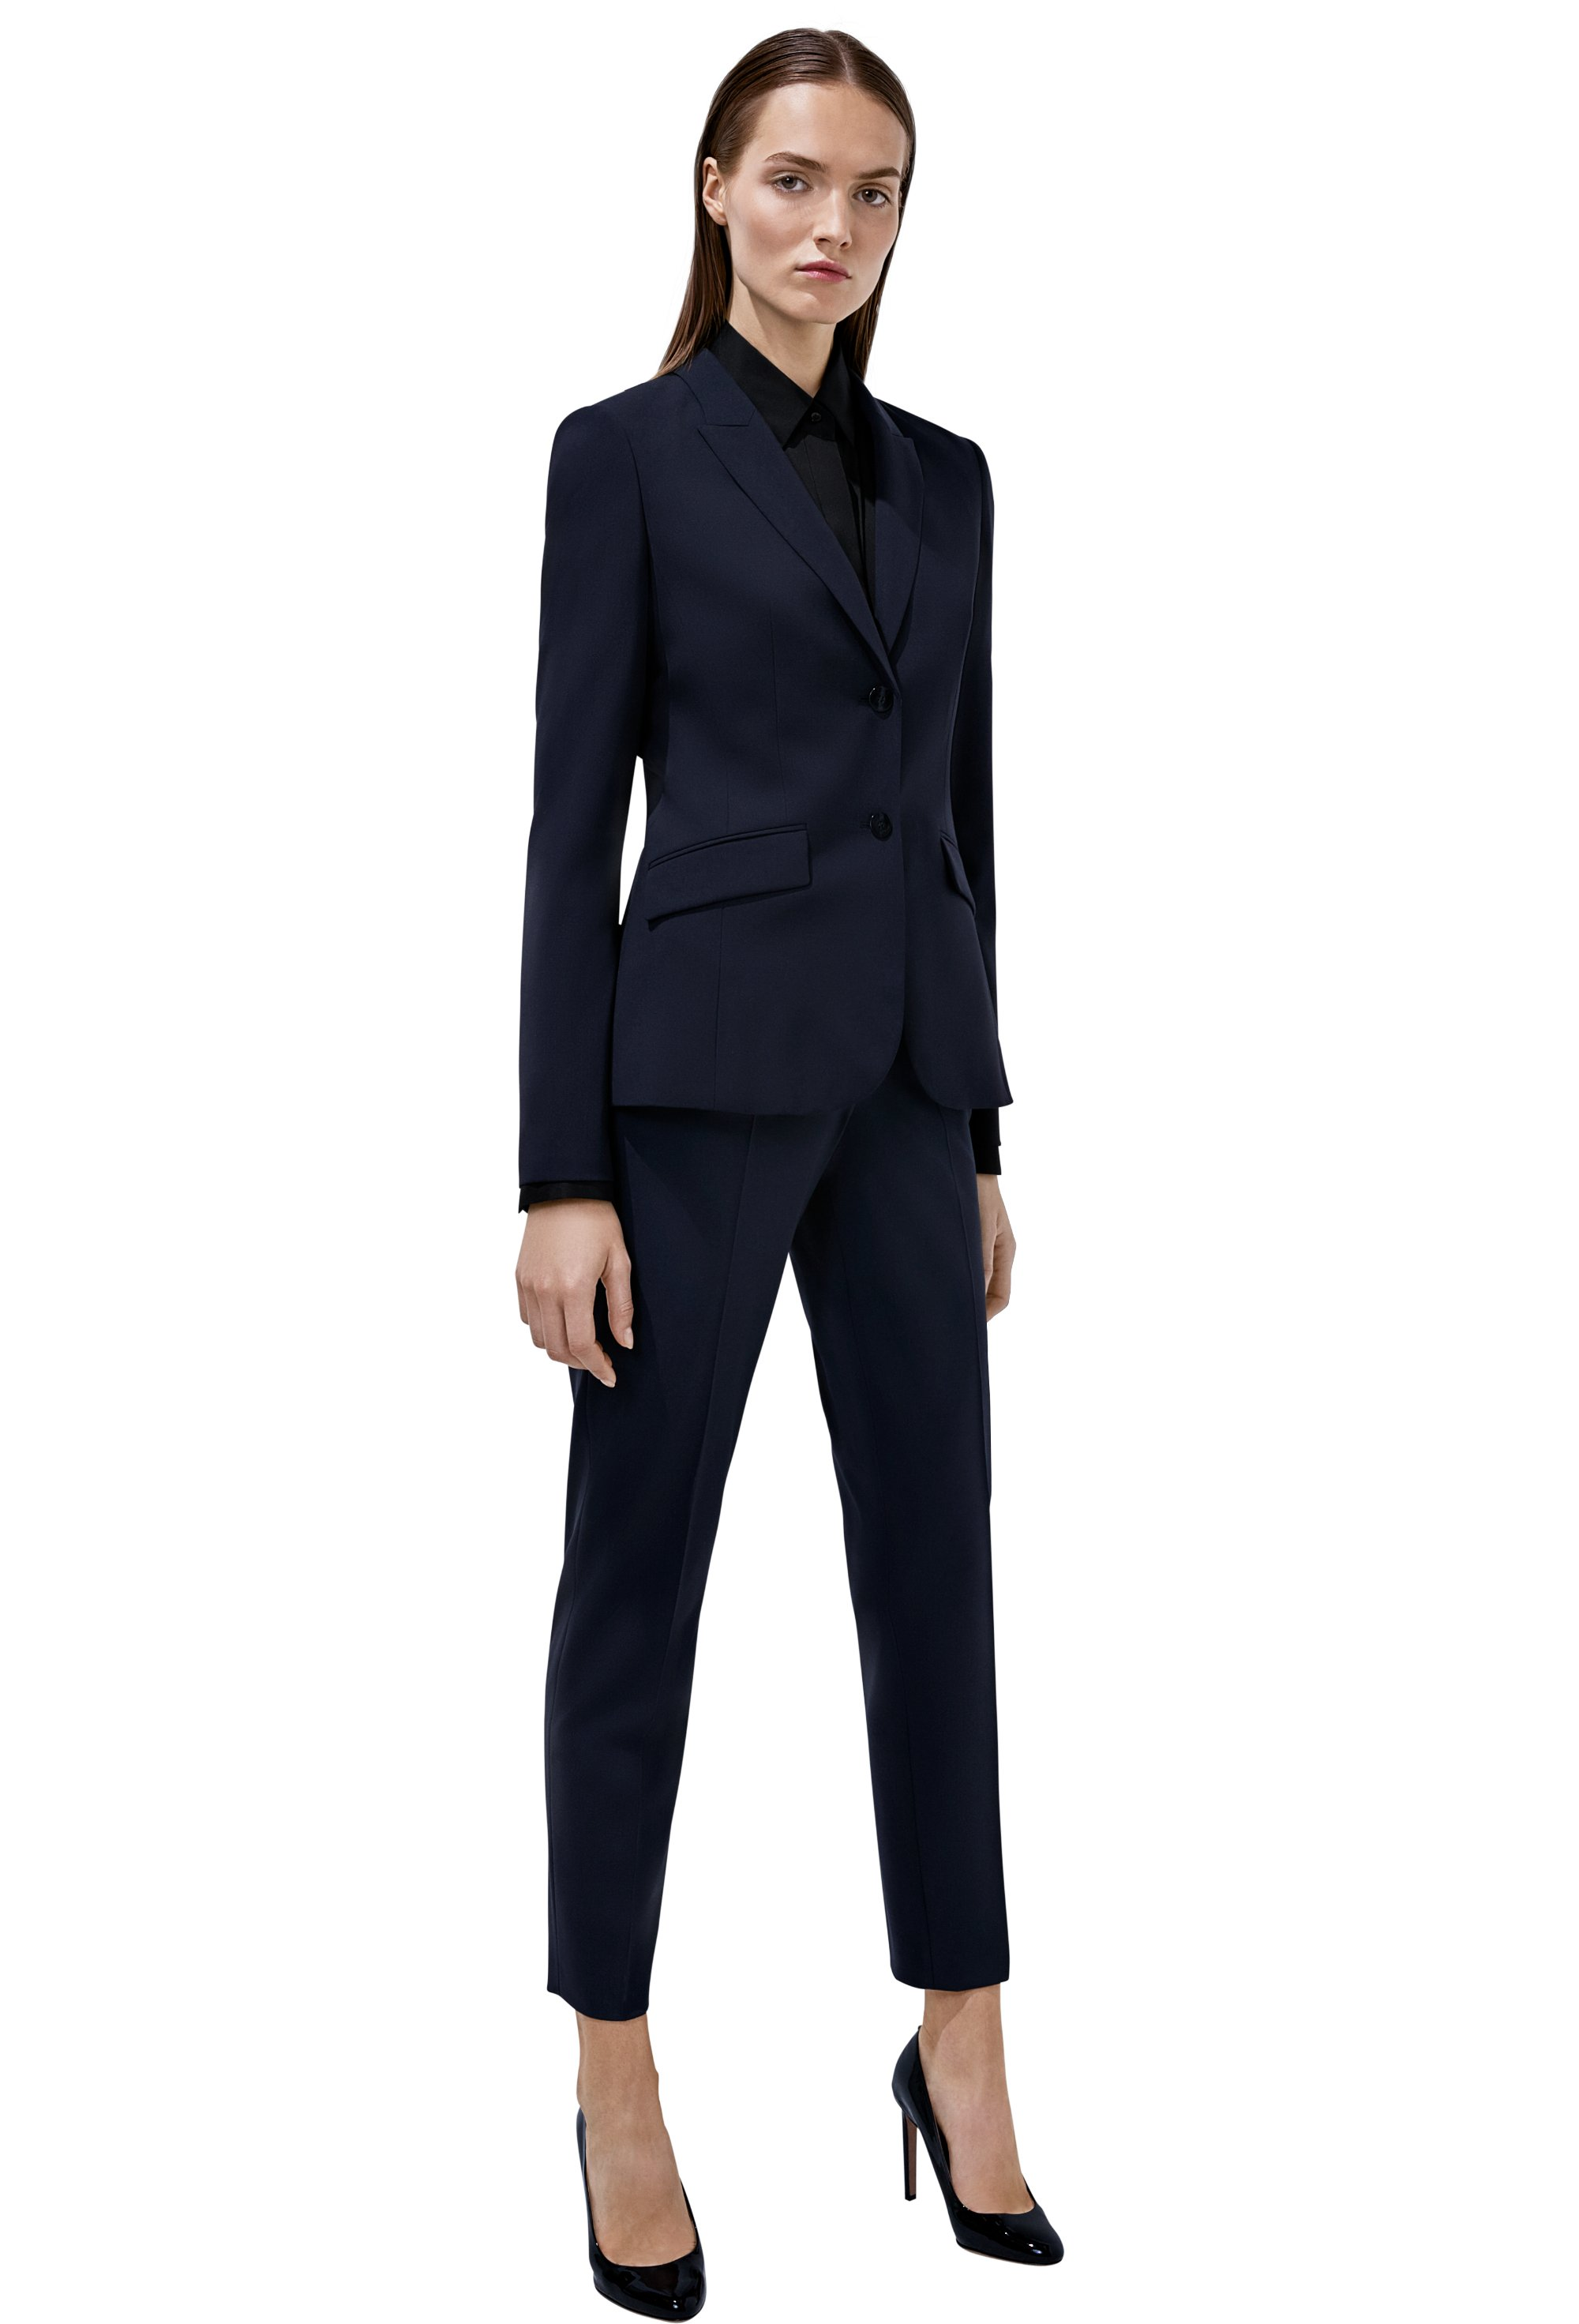 BOSS WOMEN Fundamentals SR17 Look 1